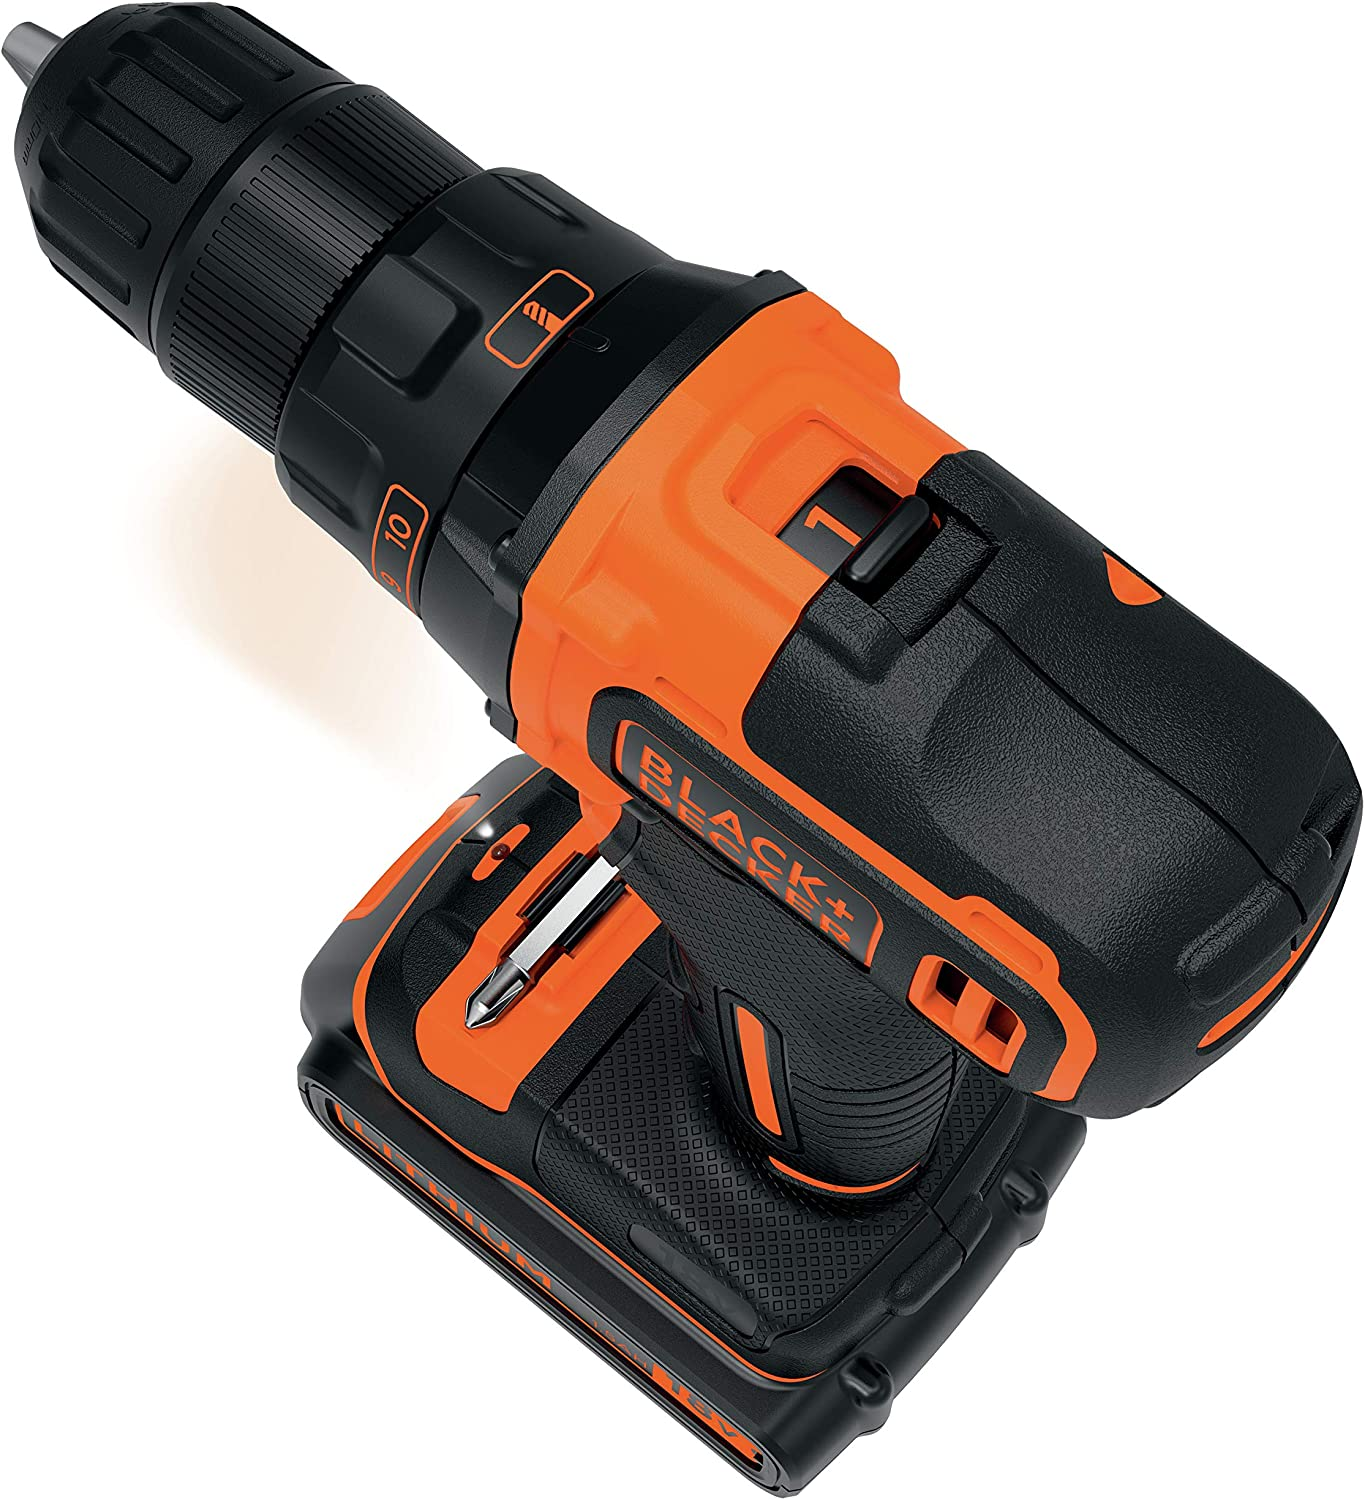 Black+Decker BDCDD186K Cordless Drill with 2-Speed Transmission 18 V, 1.5 Ah, Includes 400 mA Charger in Case, with Double Bit, LED Work Light, Keyless Chuck, Non-Slip Handle